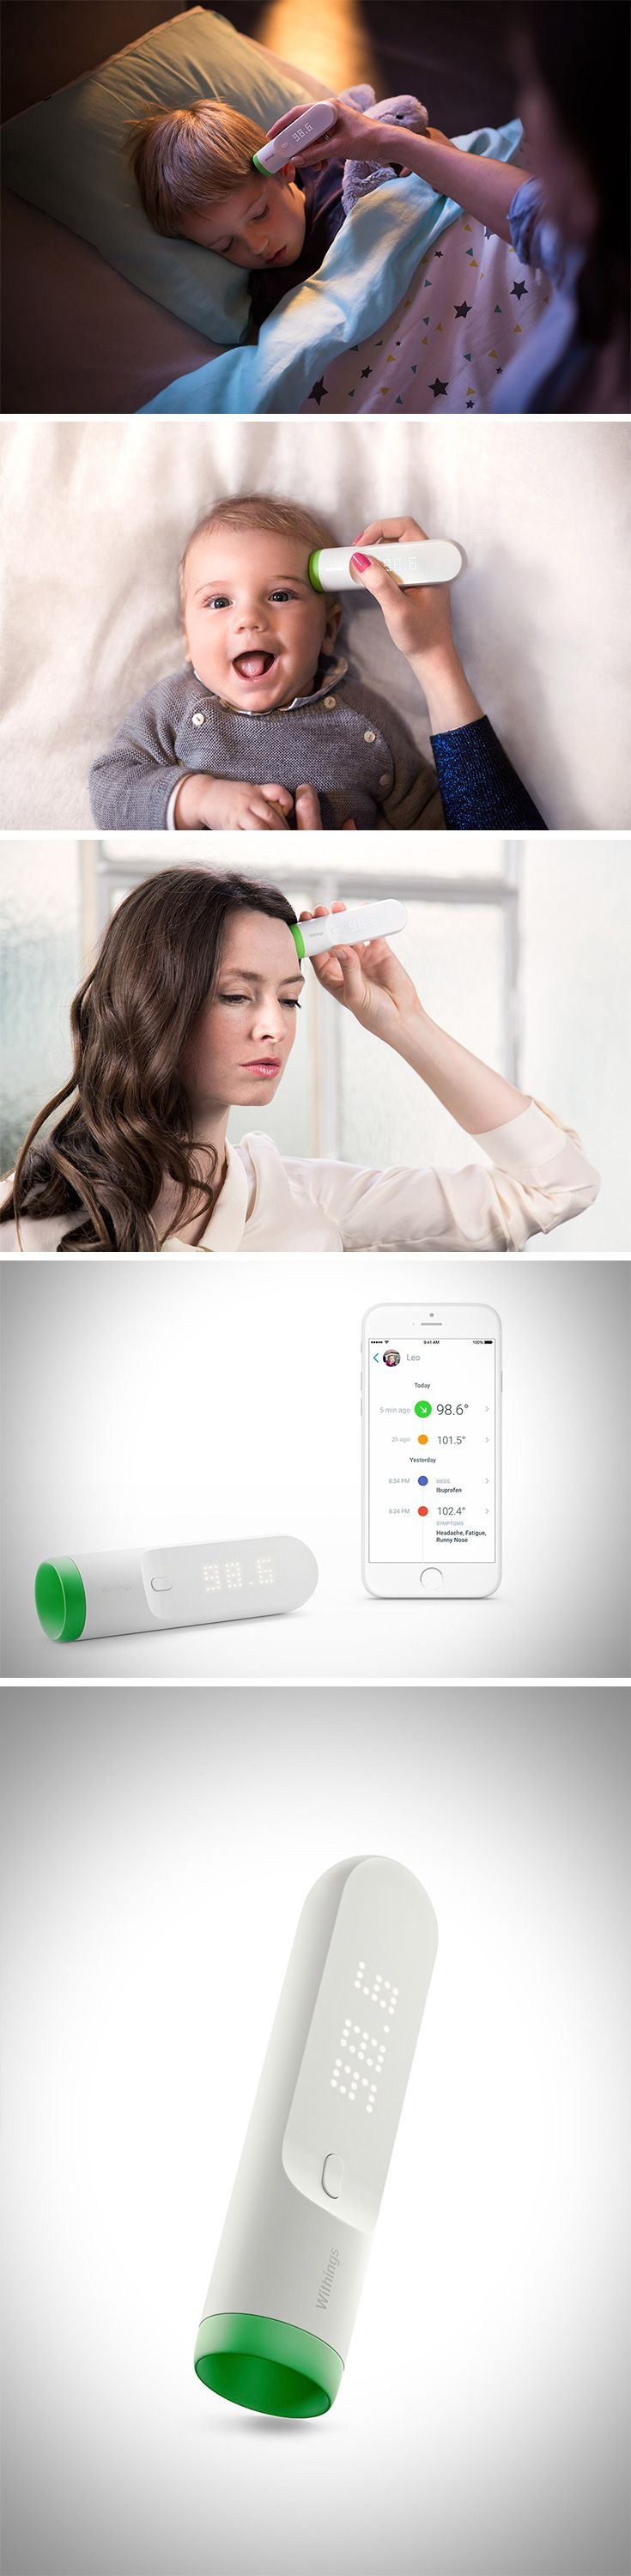 Introducing, Thermo – the Smart Temporal Thermometer! In just 2 seconds, its 16 infrared sensors take over 4000 measurements to determine temperature from the temporal artery (considered the most accurate place to take temperature). You don't even have to make contact with the skin, making it the most sanitary. BUY NOW!